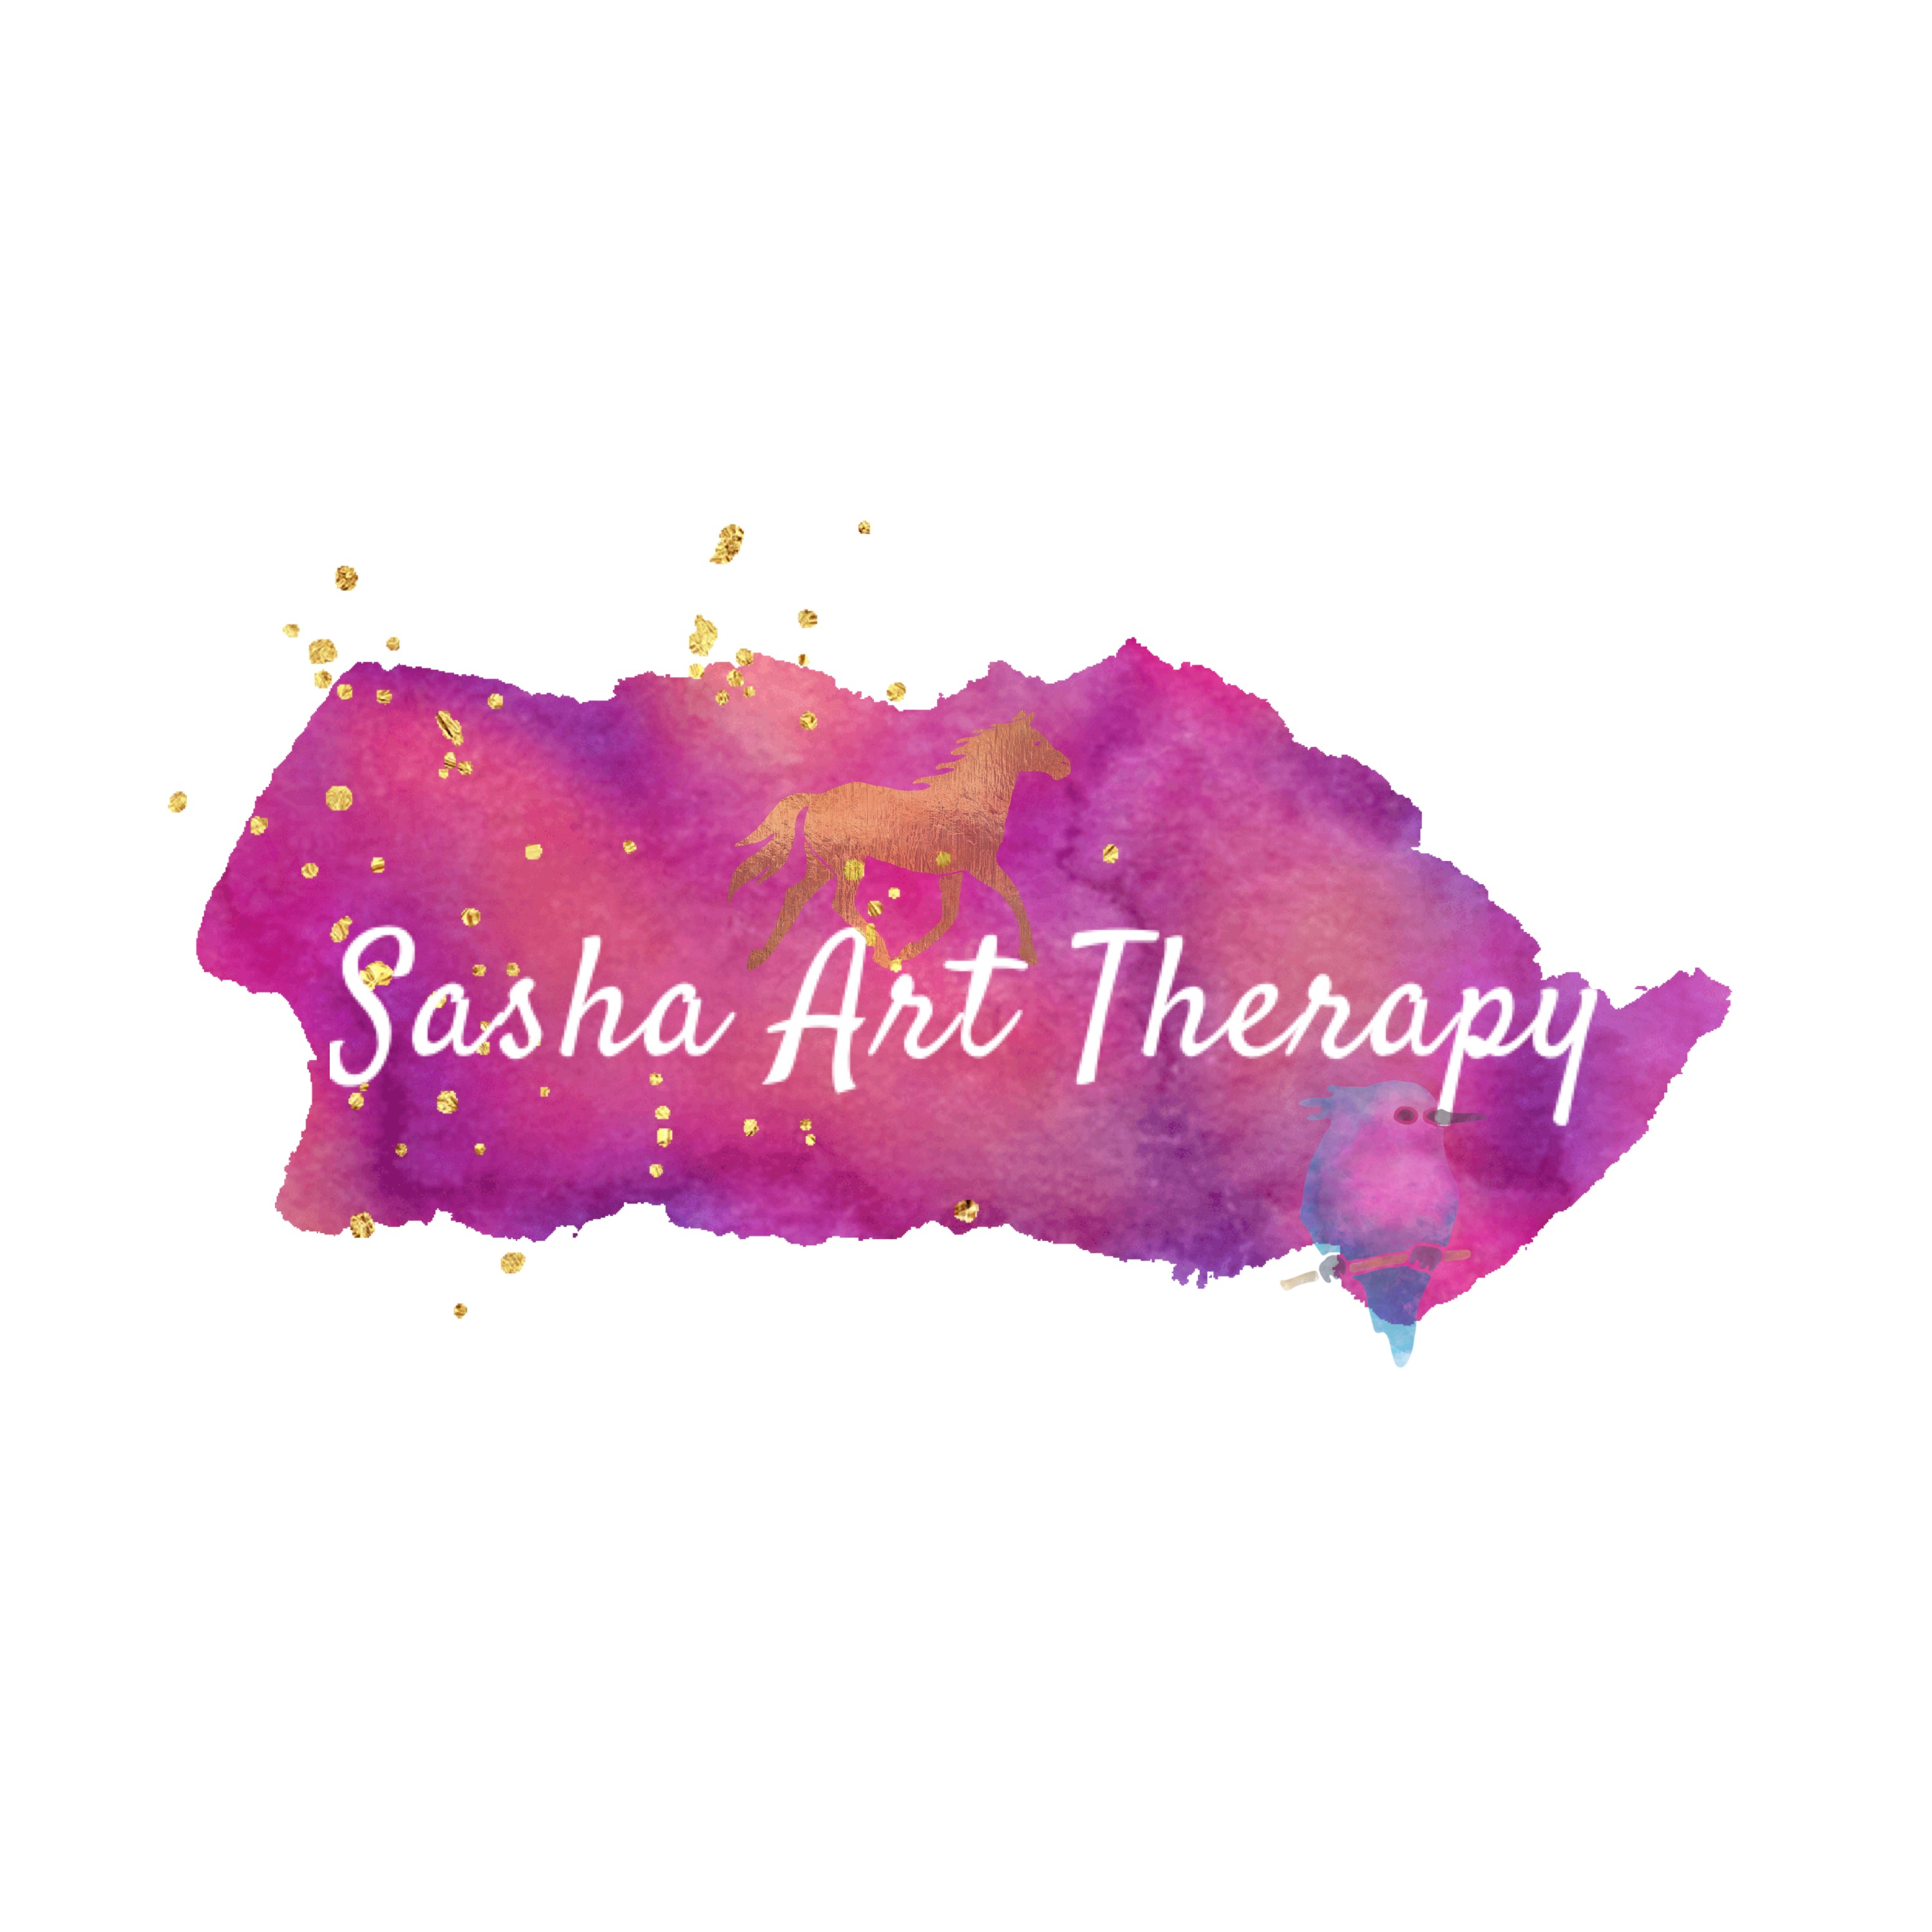 Sasha_art_theraphy